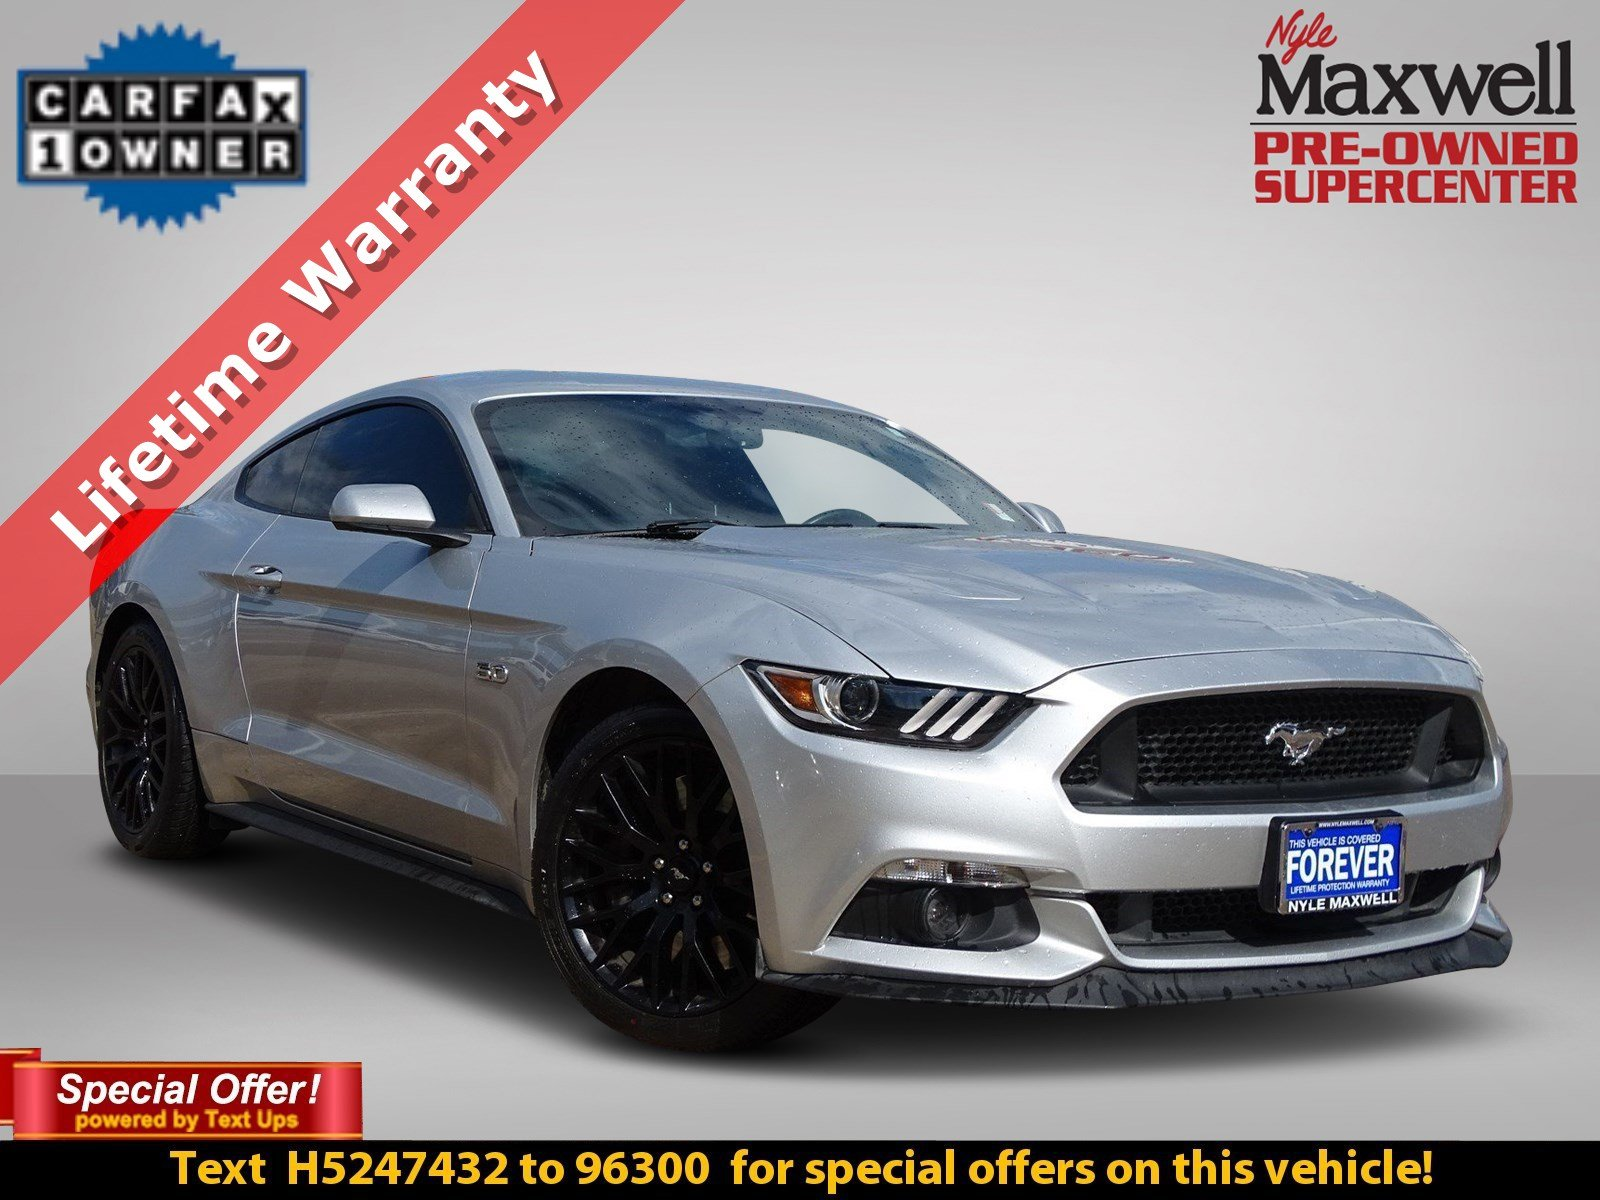 Https Www Nylemaxwellgmc Inventory Certified Used 2017 Ford Mustang Gt Rwd 2dr Car 1fa6p8cf0h5247432